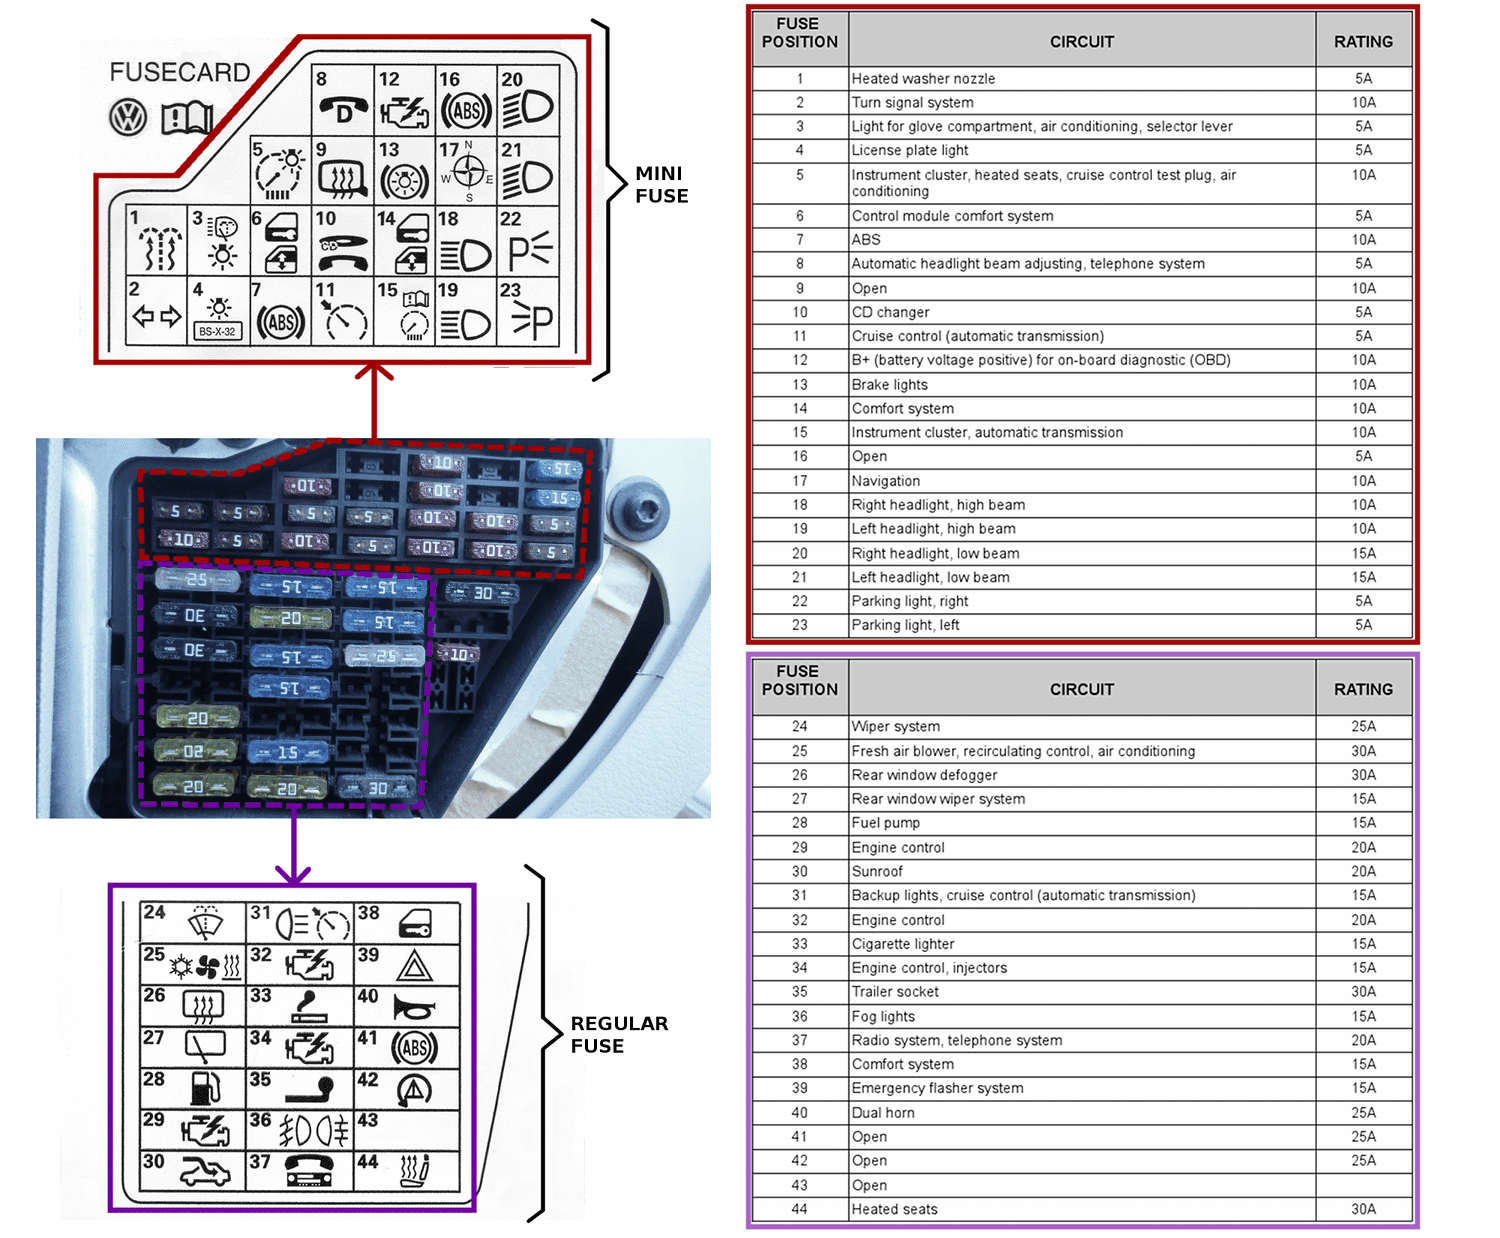 DIAGRAM] Volkswagen Tiguan 2014 Wiring Diagram FULL Version HD Quality  Wiring Diagram - JDIAGRAM.SPANOBAR.IT | 2014 Volkswagen Tiguan Fuse Box Diagram |  | Diagram Database